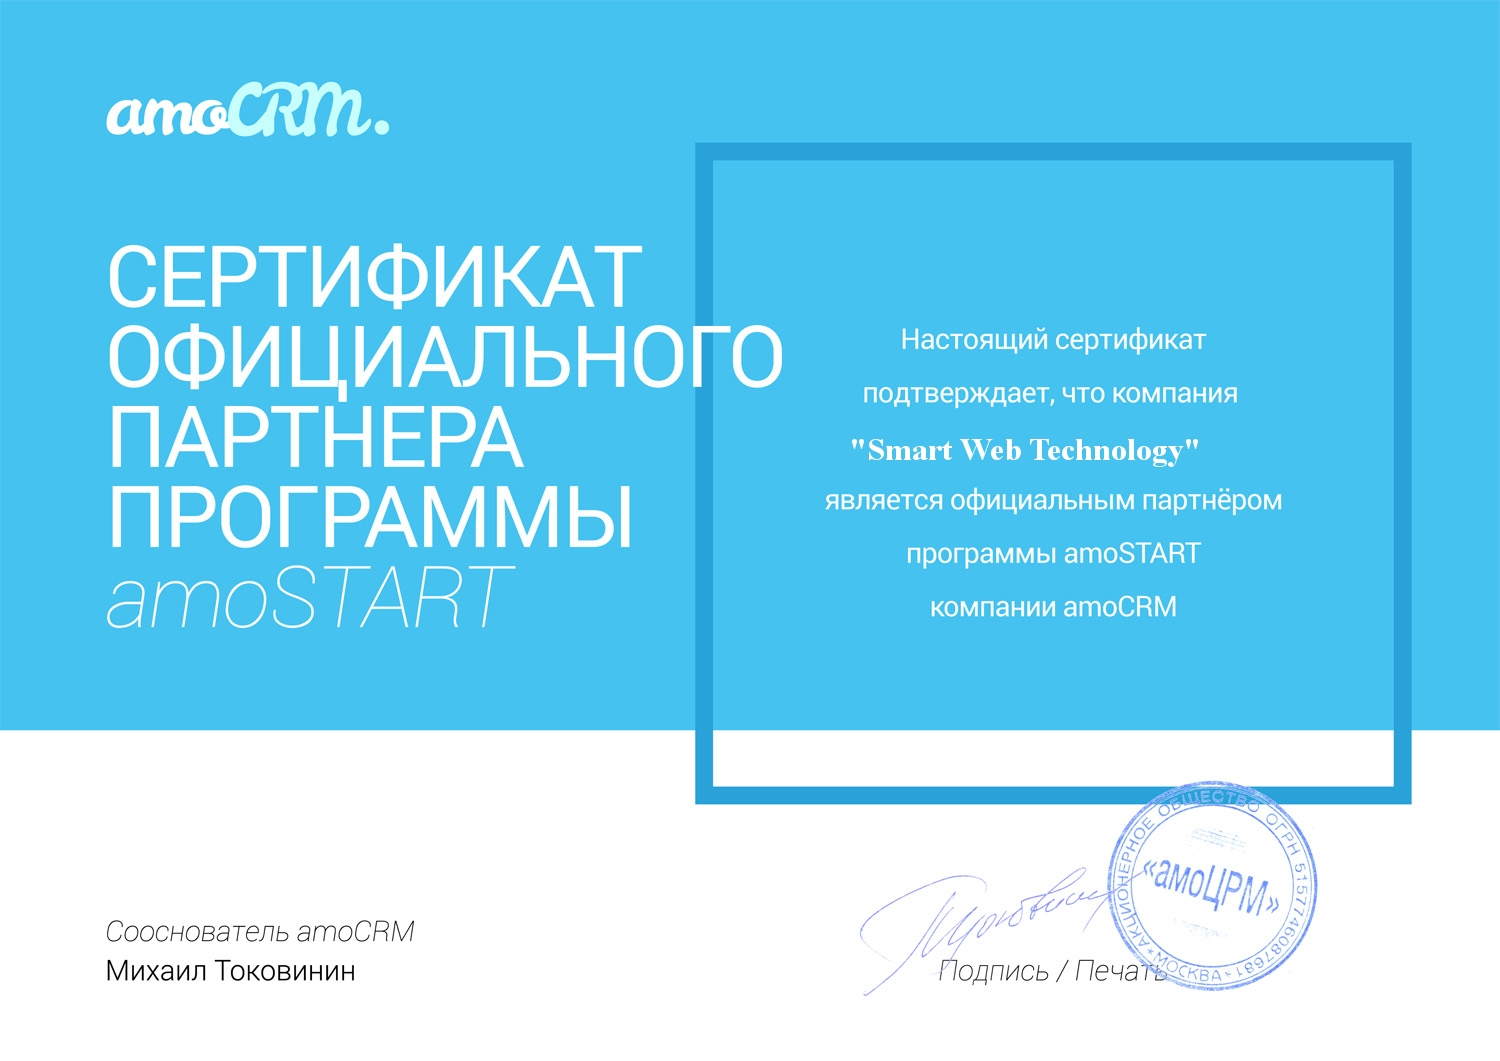 Сертификат Smart Web Technology от AmoCRM